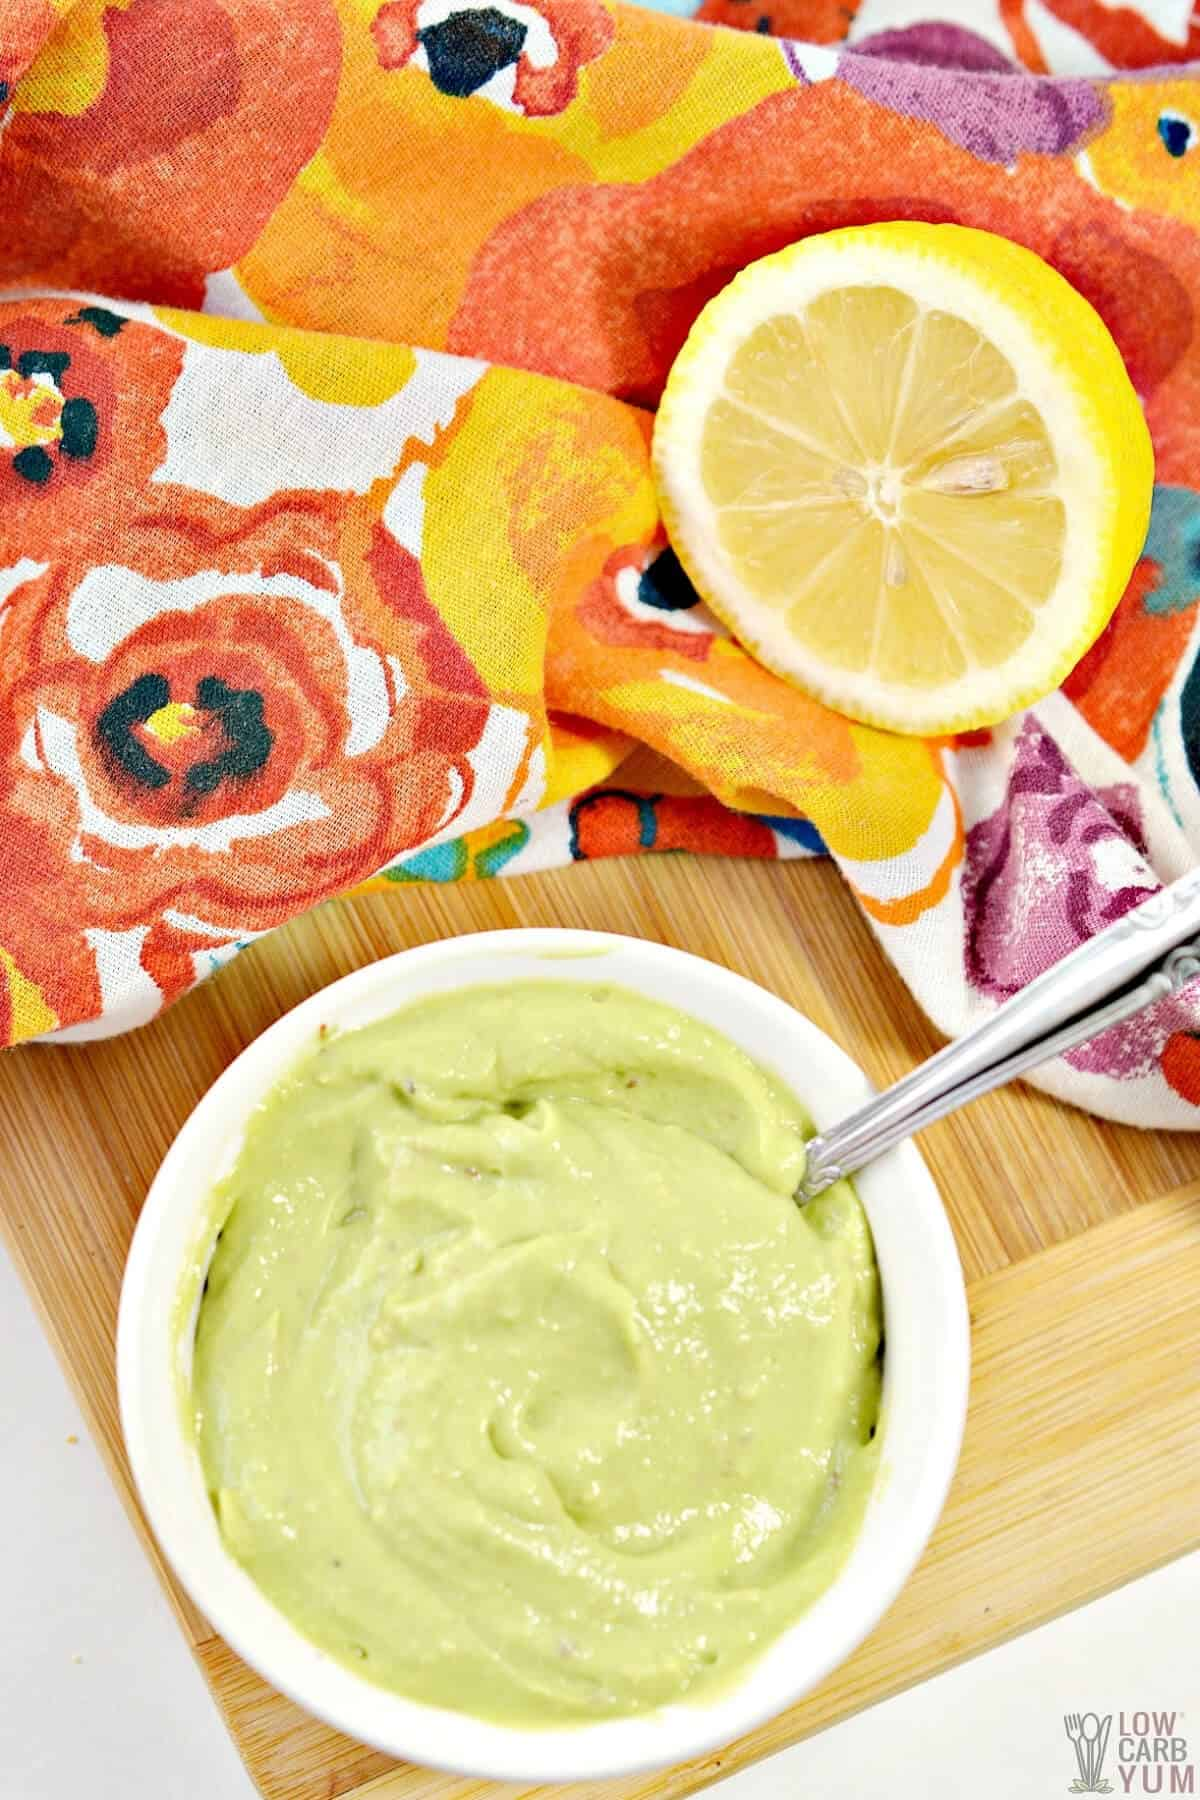 keto mayonnaise made with avocados in a white bowl